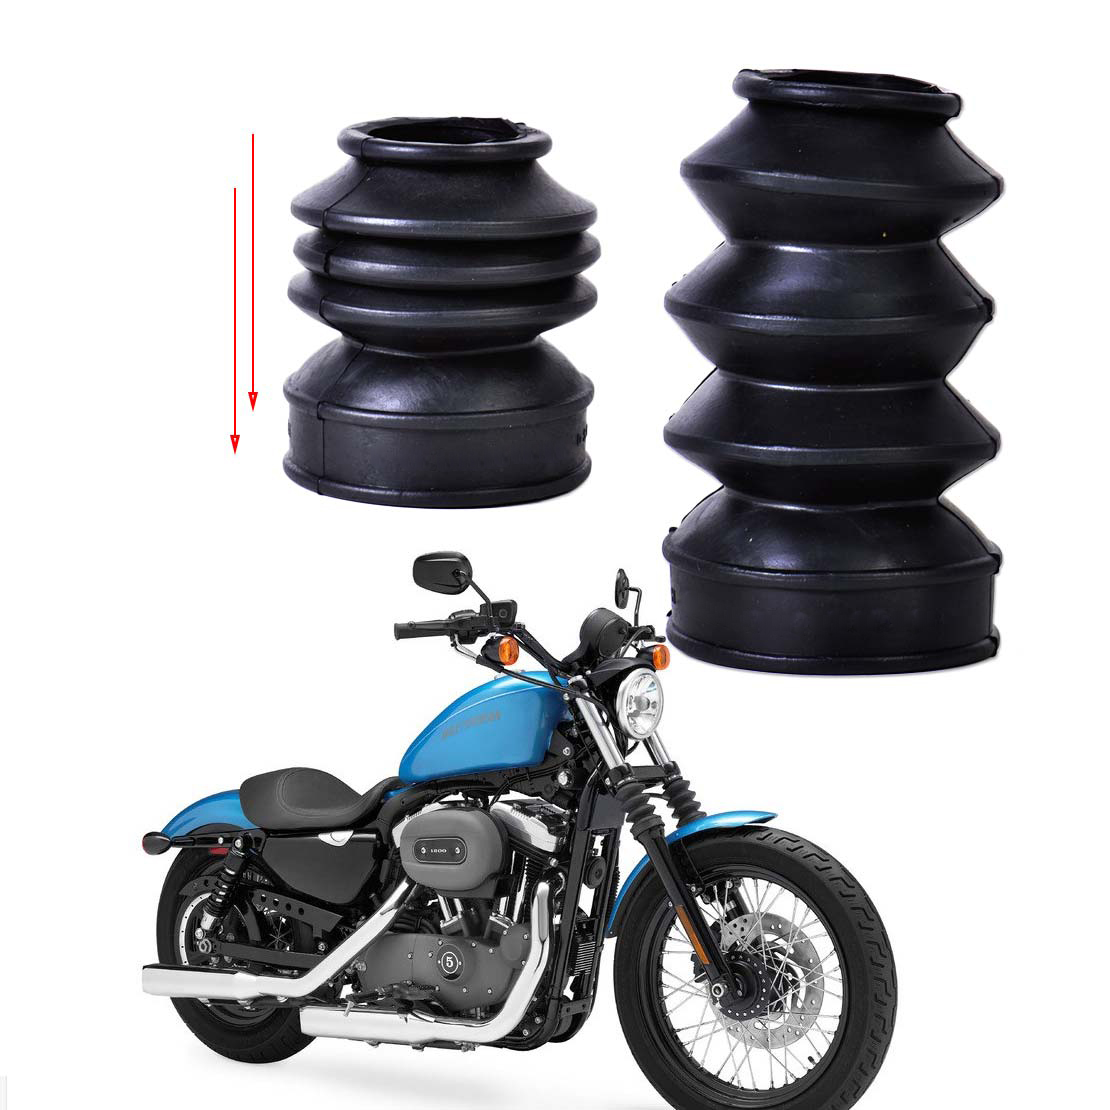 beler New 2Pcs Black Front Rubber Fork Dirt Cover Gaiter Gator Boot Cap Shock Fits For Motorcycle Harley Sportster Dyna FX XL883 motorcycle chrome front spoiler chin fairing for harley sportster xl883 1200 04 15 new